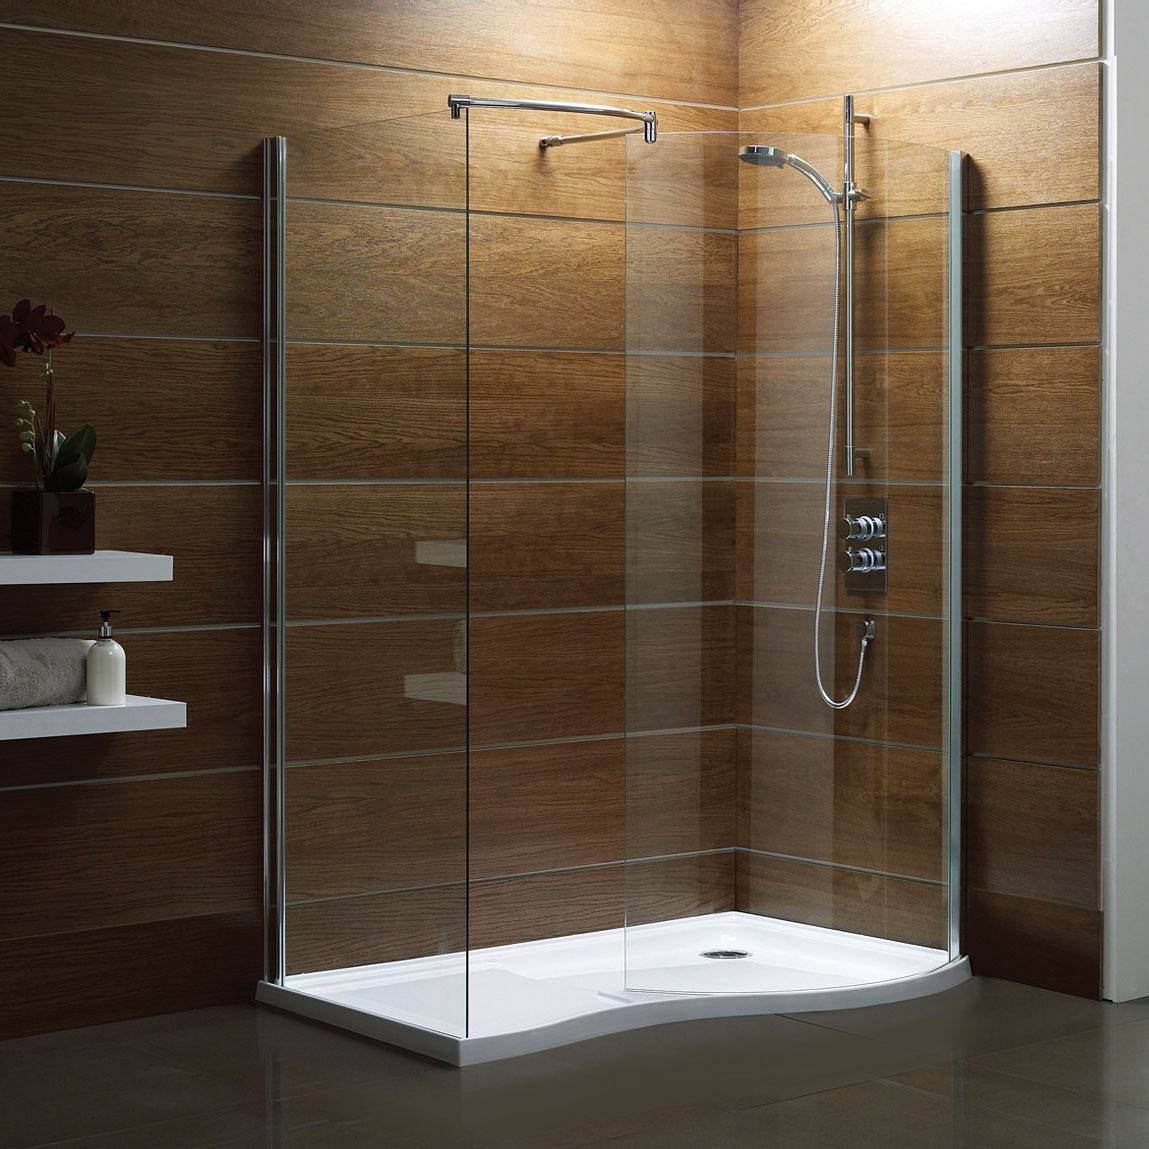 Walk in shower designs athenadecoatingideas Walk in shower designs